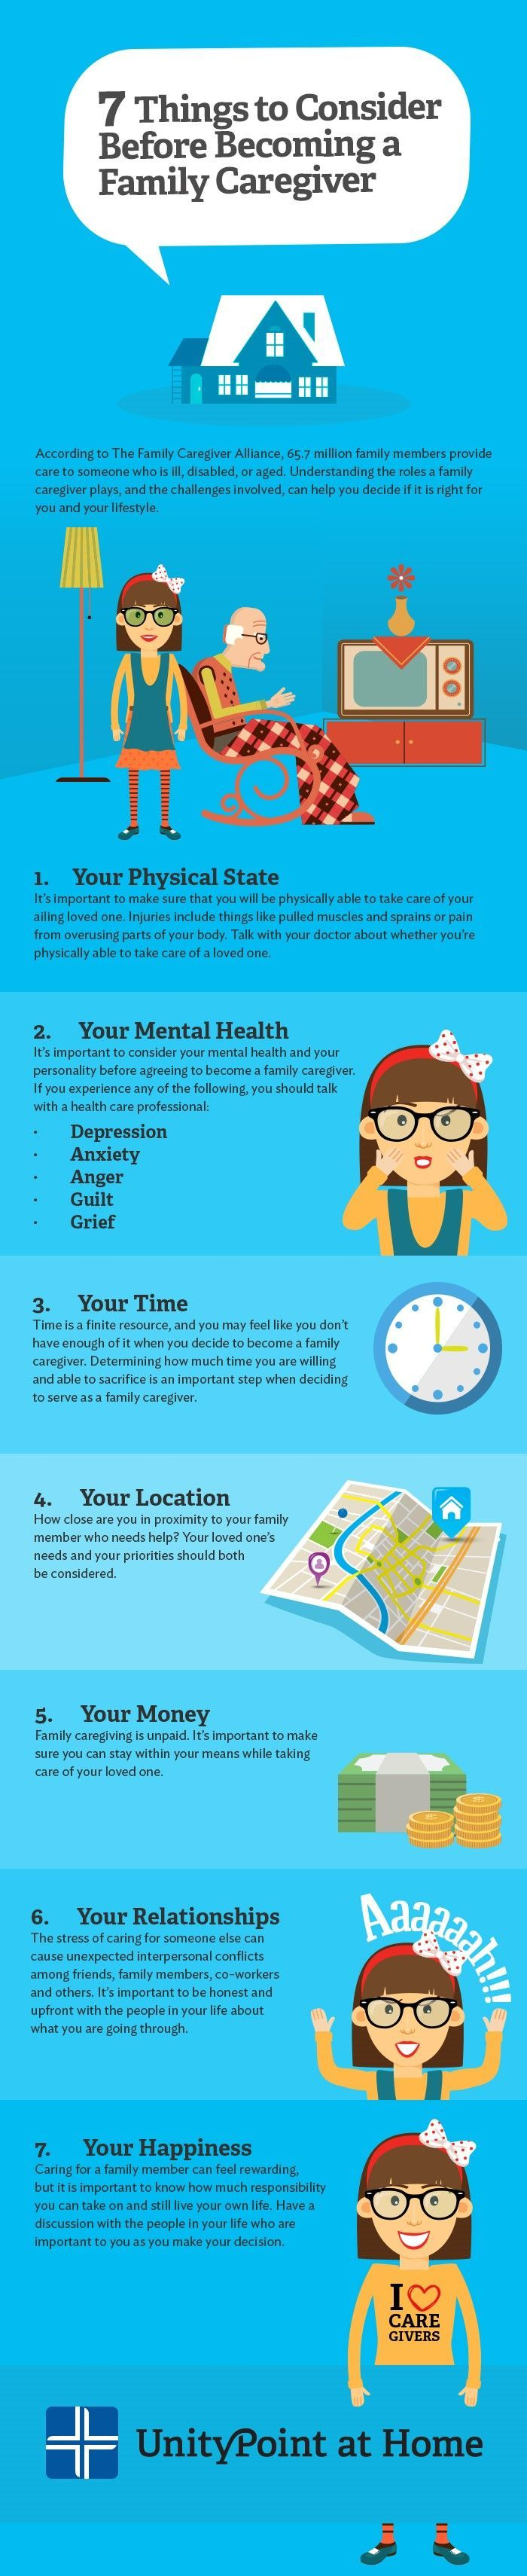 7 Things to Think About Before Becoming a Family Caregiver #Infographic from UnityPoint At Home  Pinned by OTToolkit.com. Treatment plans and patient handouts for the OT working with physical disabilities and geriatrics.